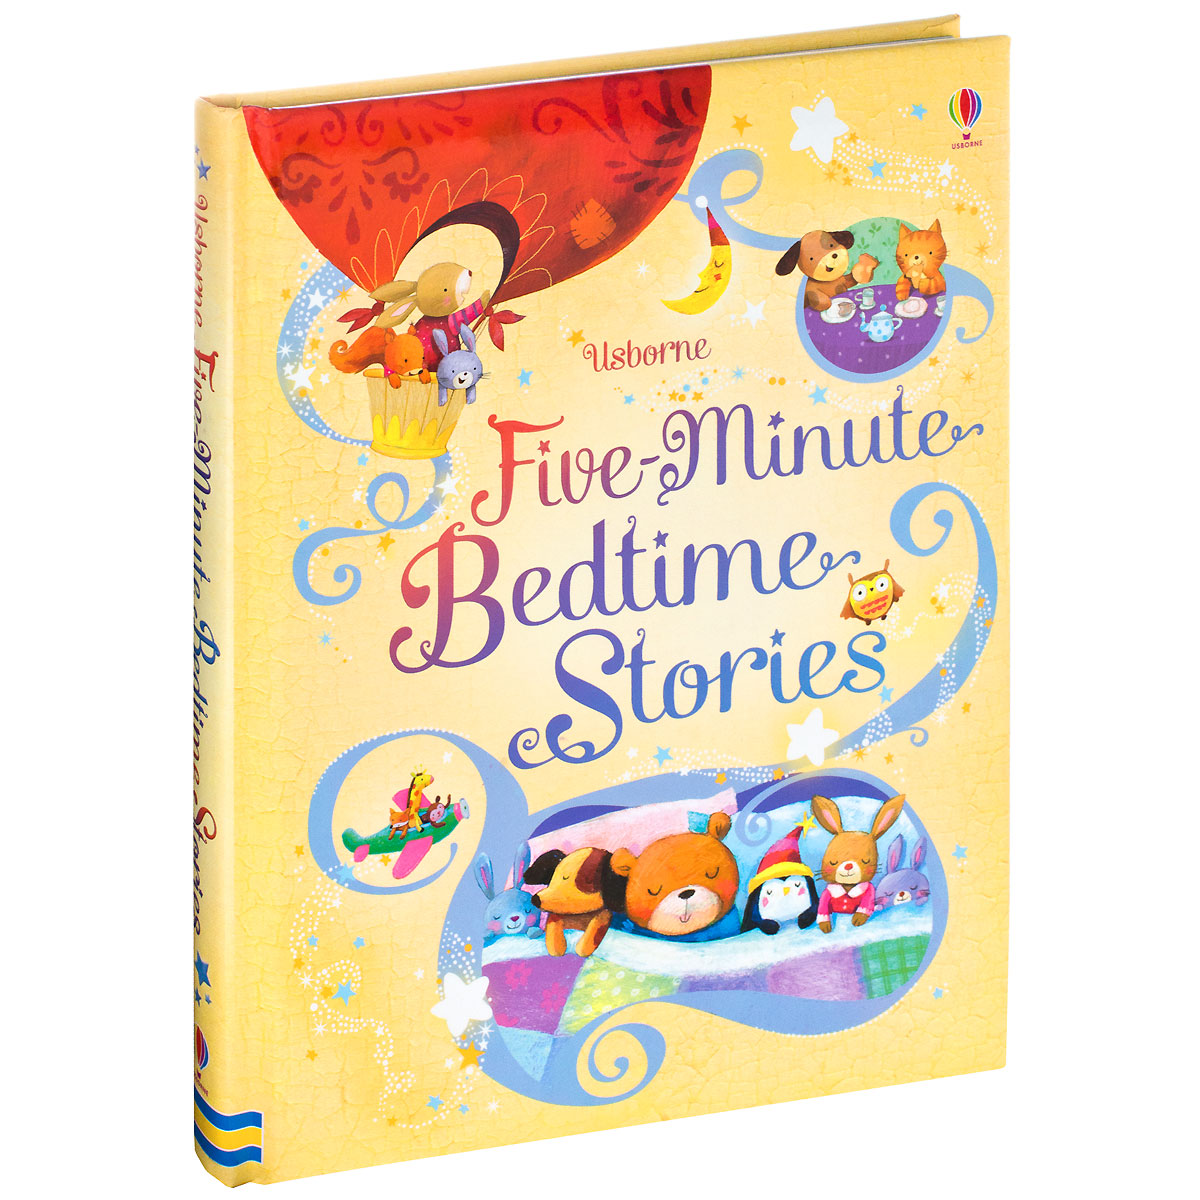 Five-Minute Bedtime Stories to build a fire and other stories